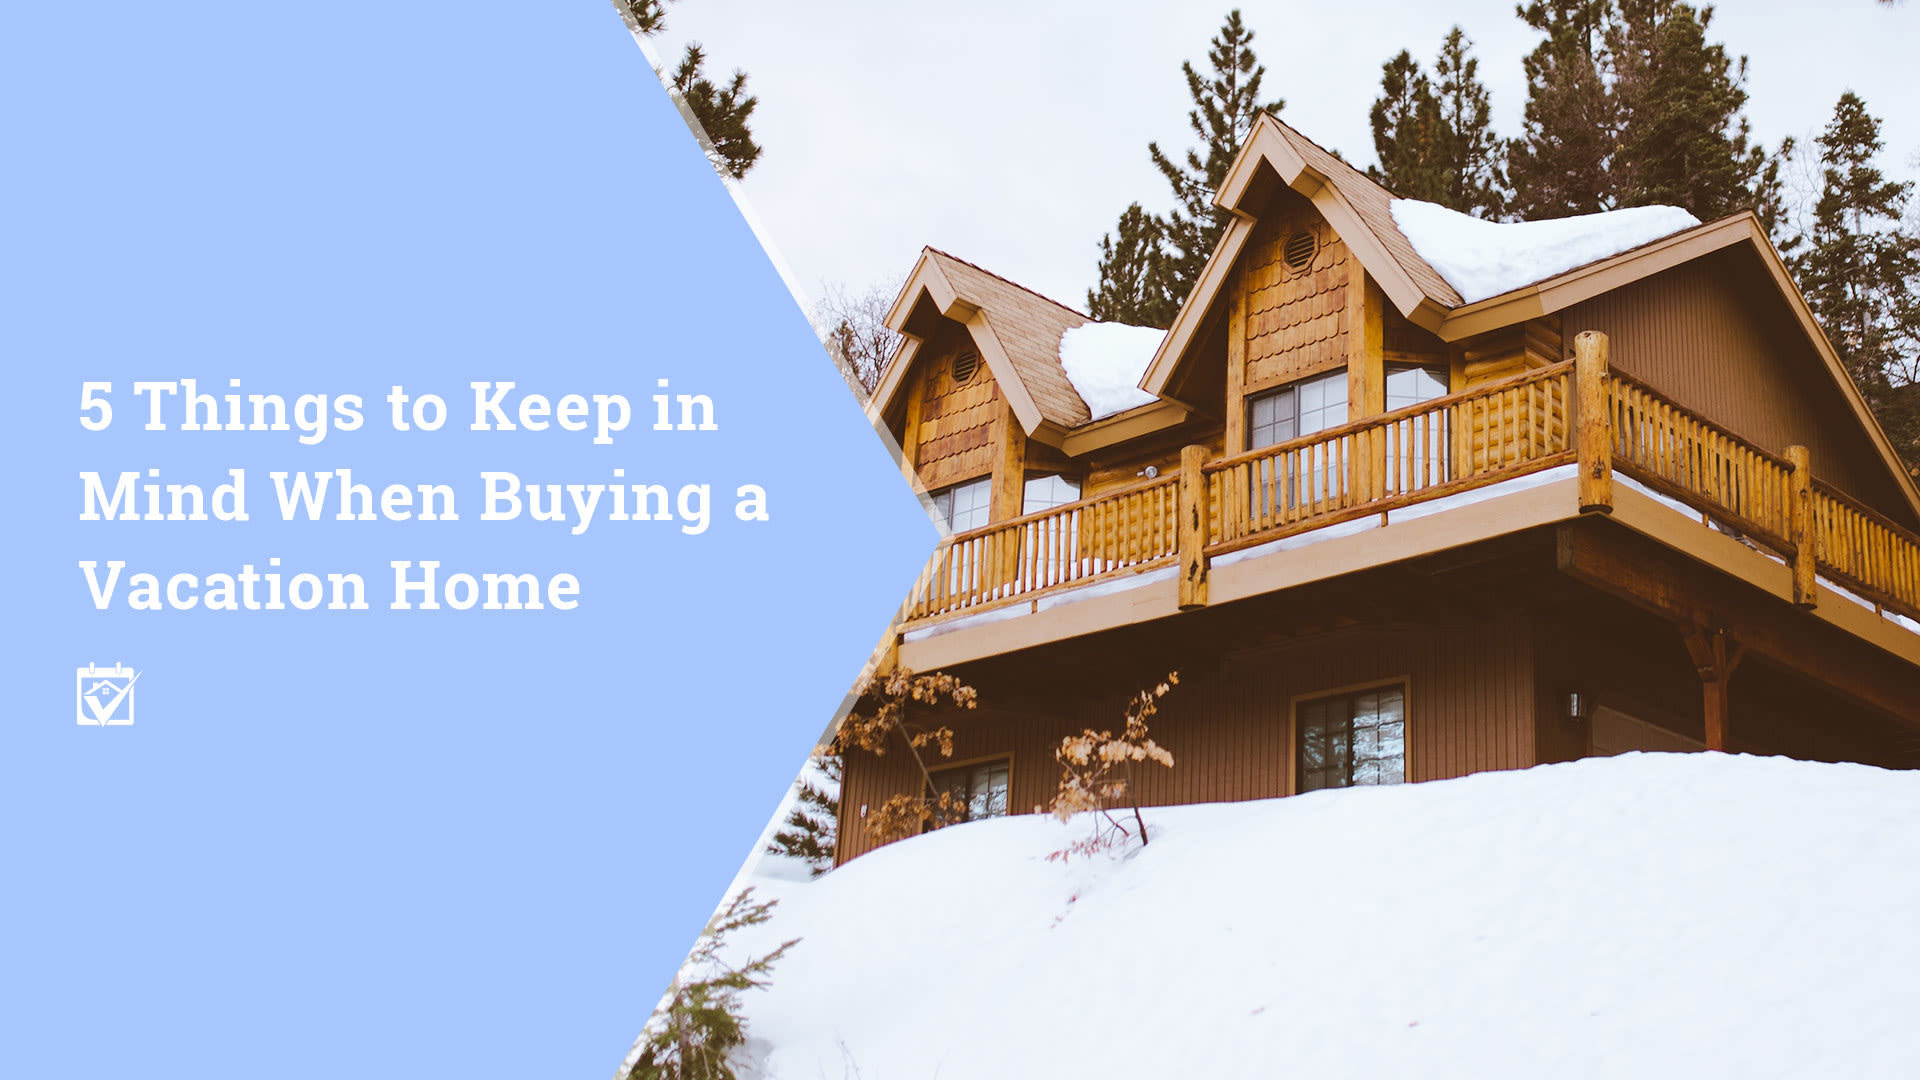 Buying a Vacation Home – 5 Tips